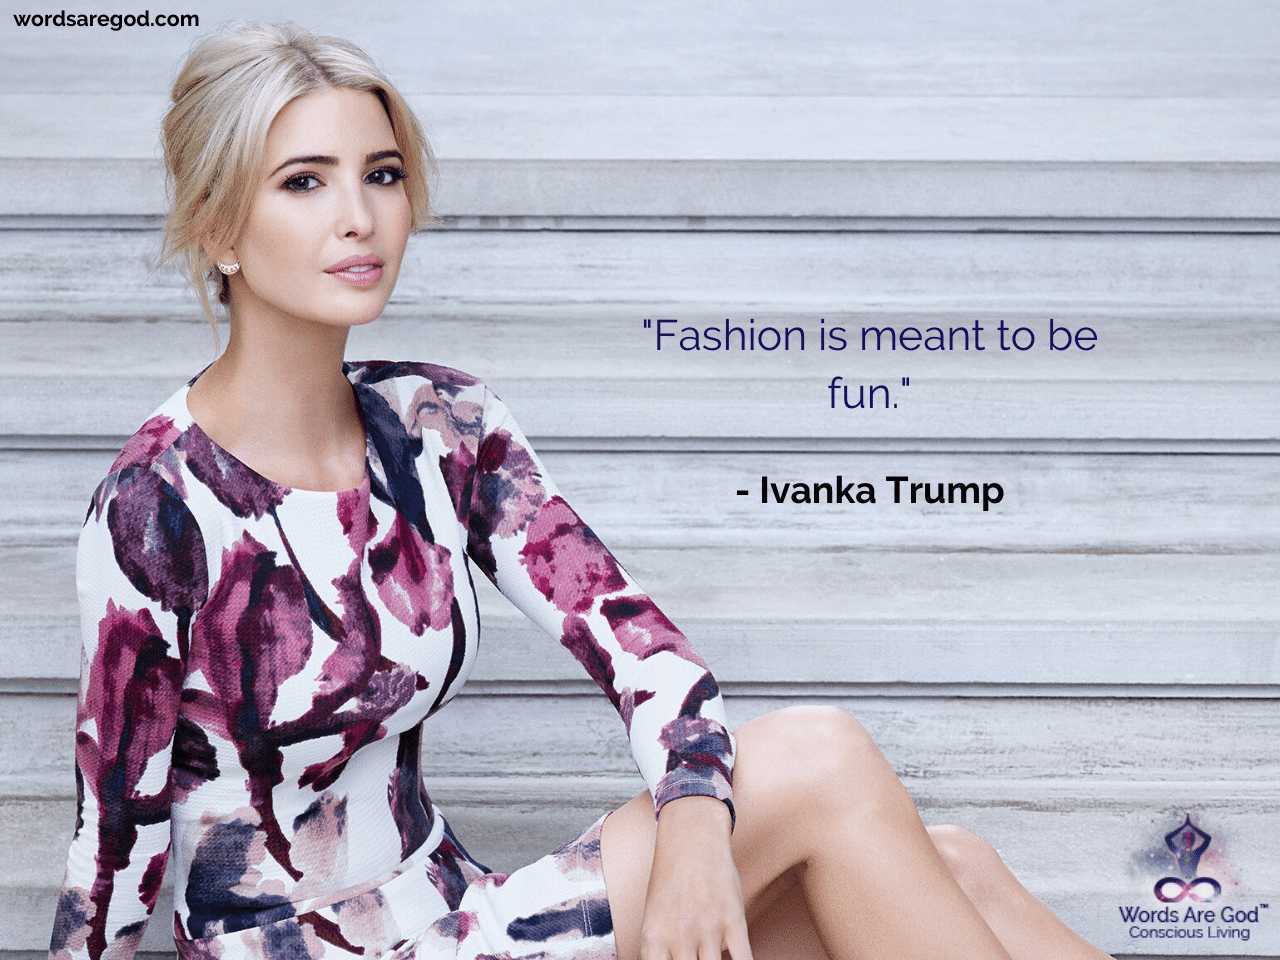 Ivanka Trump Inspirational Quotes